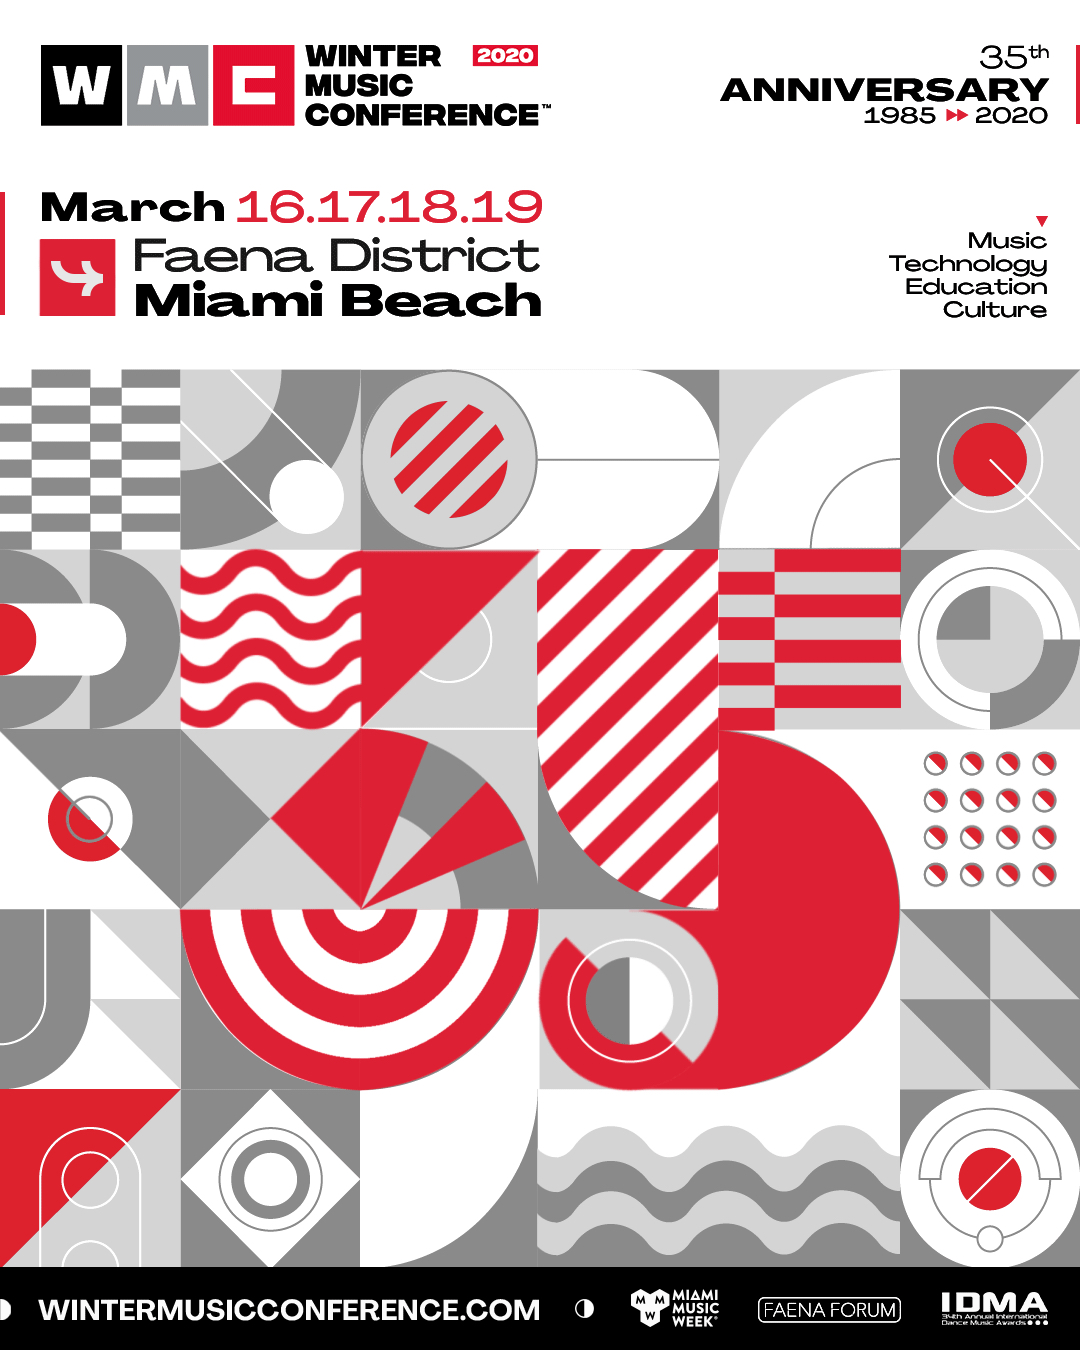 Winter Music Conference 35th Anniversary (Day 3) Image